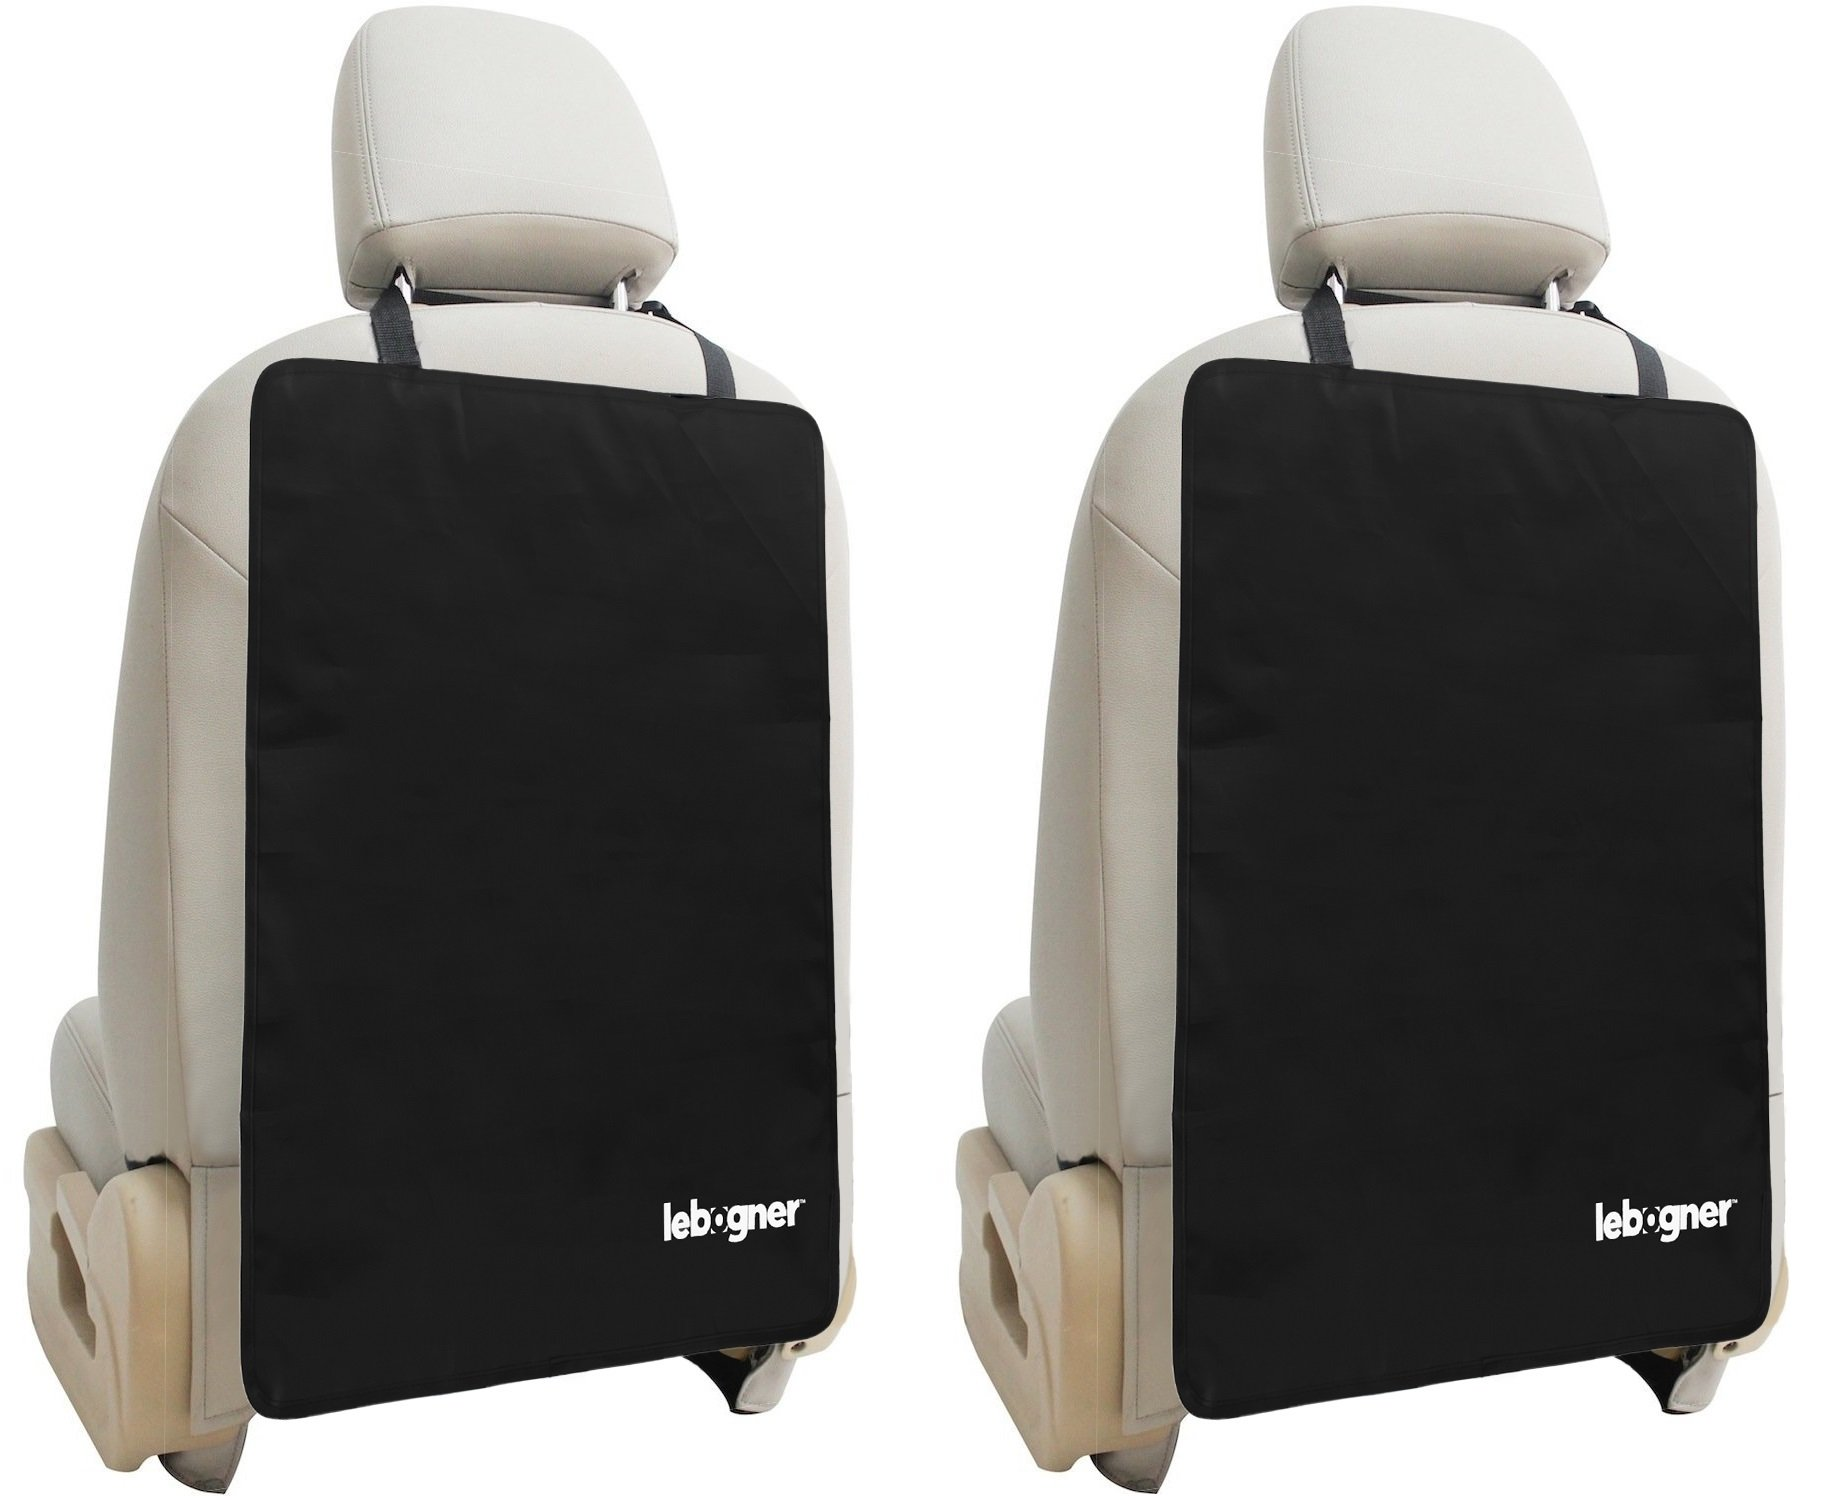 Car Seat Back Protectors by Lebogner - Luxury Kick Mat Seat Covers for The Back of Your Front Seats 2 Pack, X-Large Auto Back Seat Protector Covers, Perfect Backseat Child Kick Guard Seat Saver by lebogner